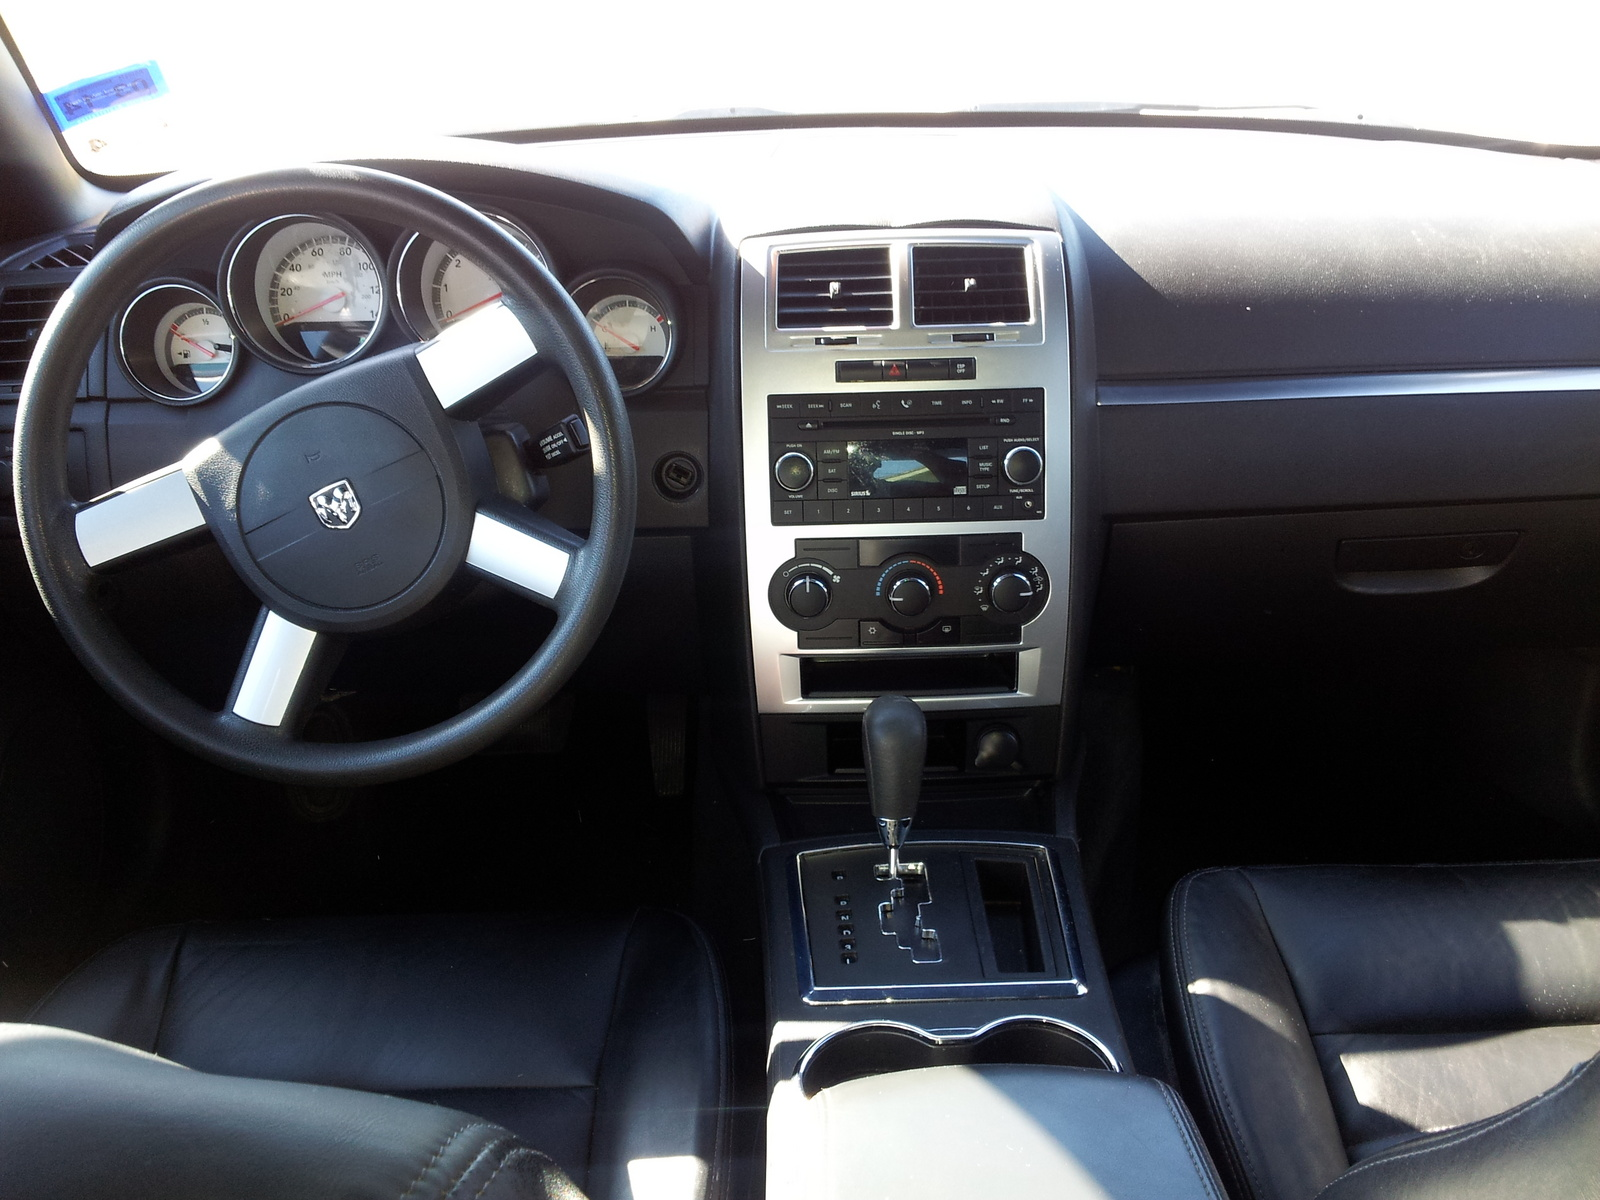 2008 dodge charger interior pictures cargurus. Cars Review. Best American Auto & Cars Review